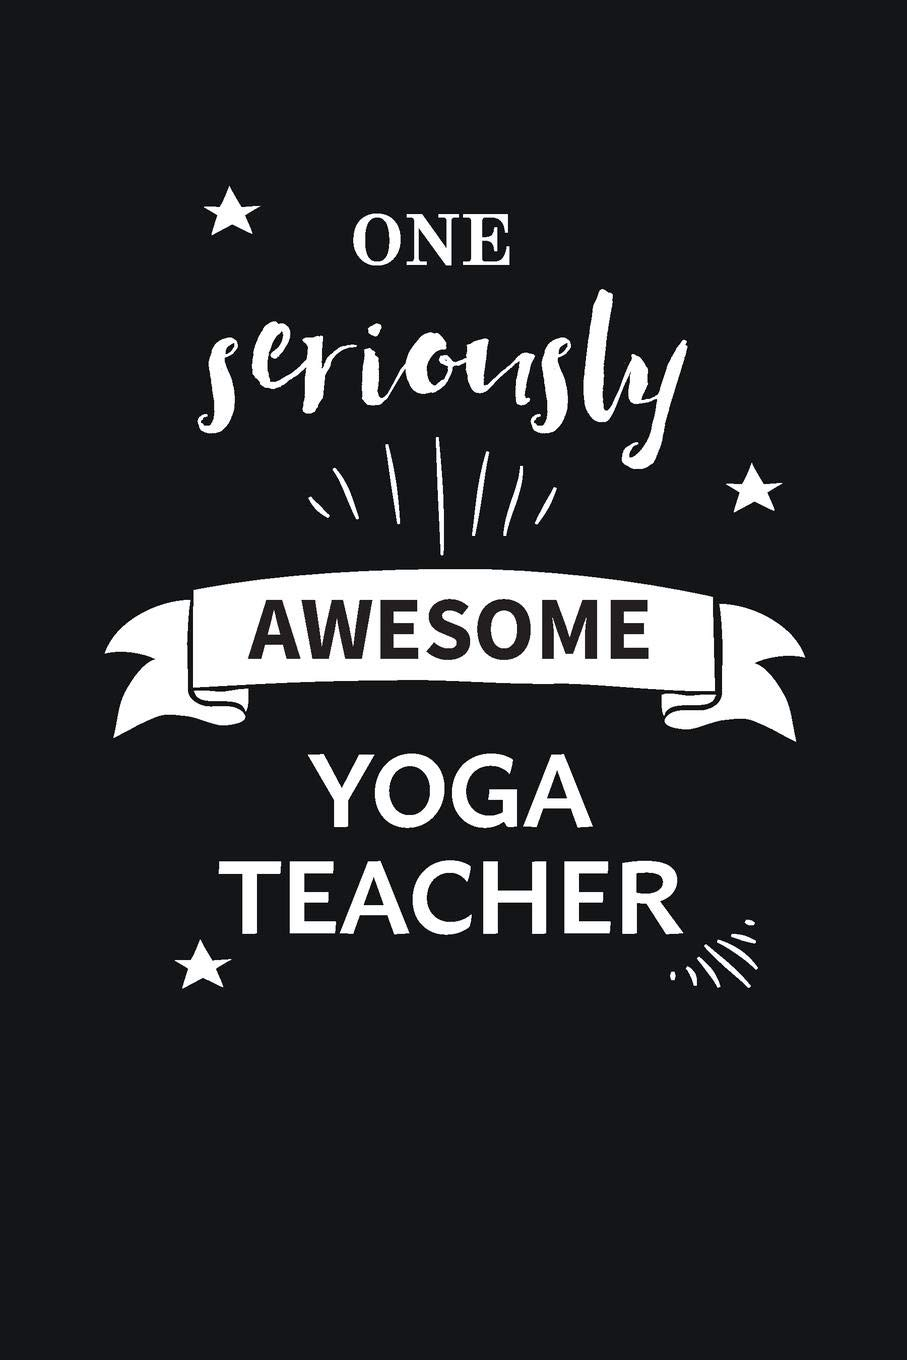 Awesome Yoga Teacher Journal Blank Lined Gift Notebook: The ...